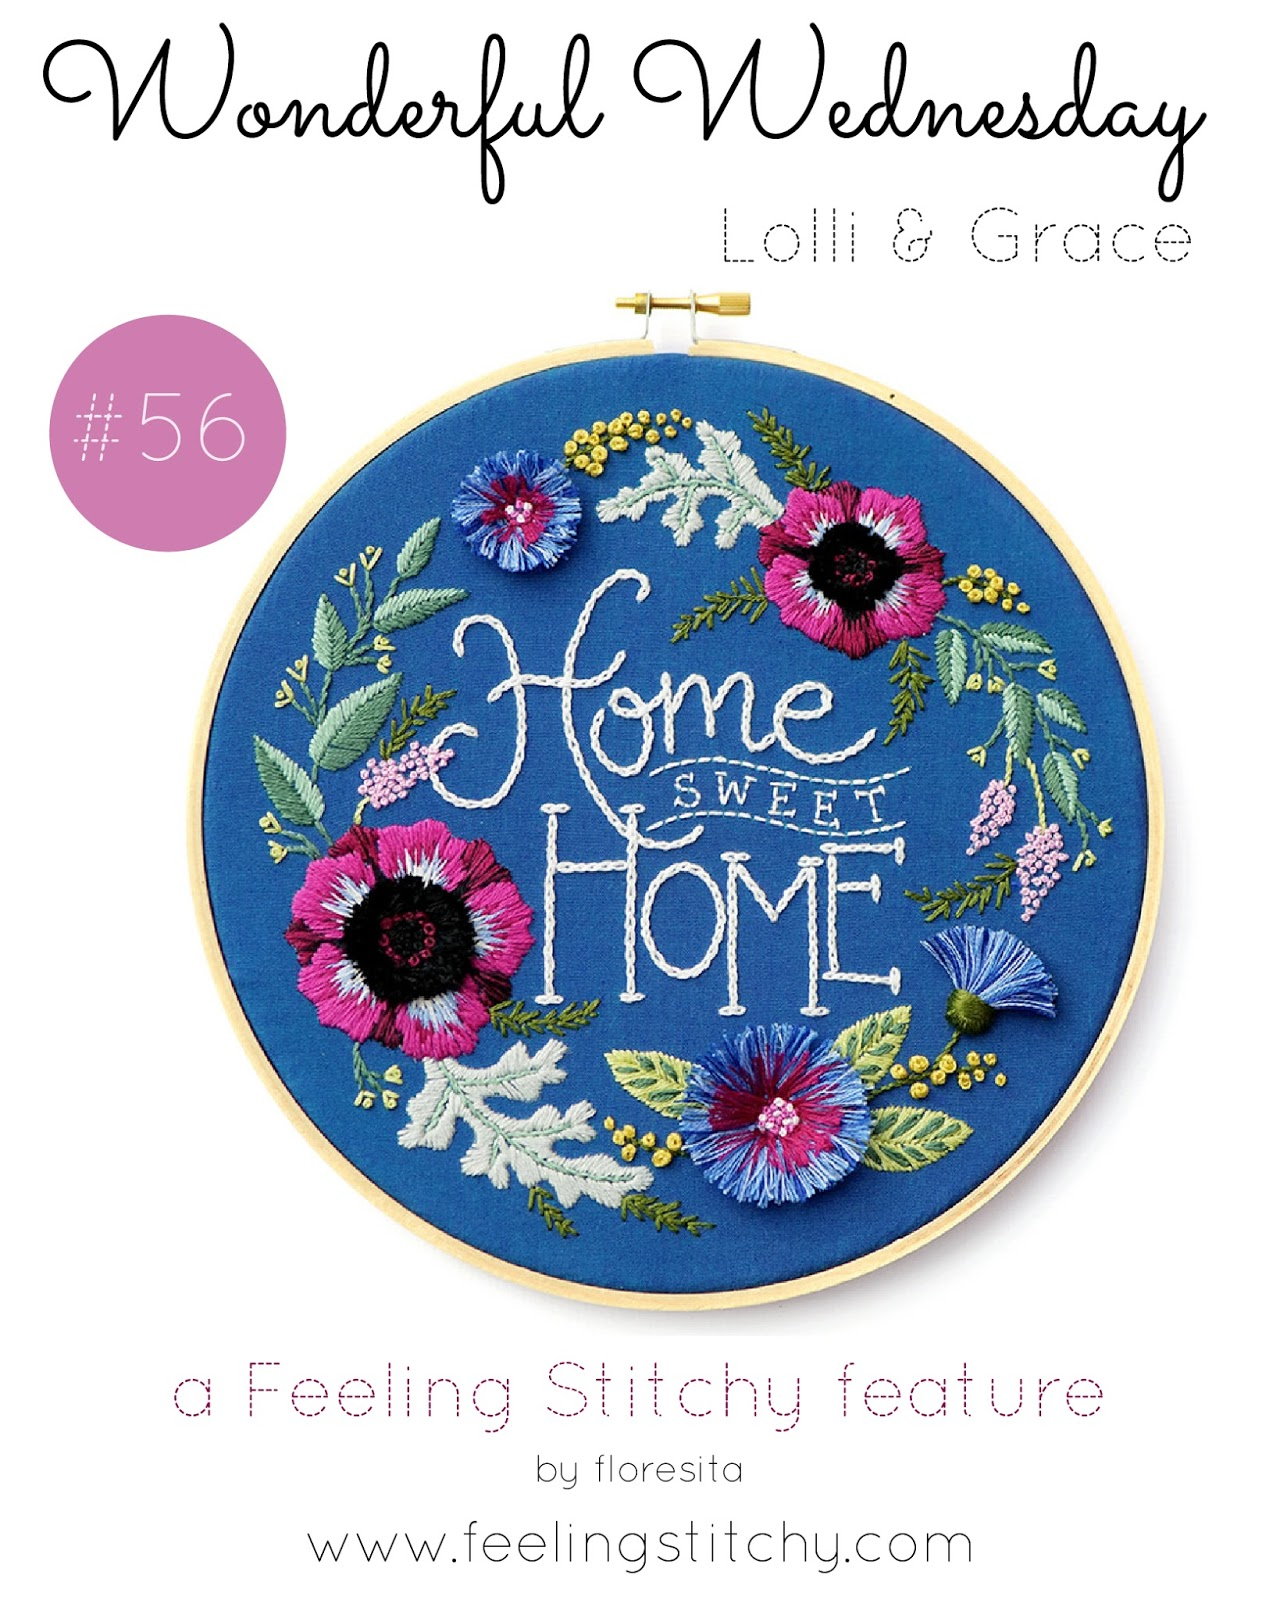 Wonderful Wednesday 56 - Lolli and Grace,  featured on Feeling Stitchy by floresita